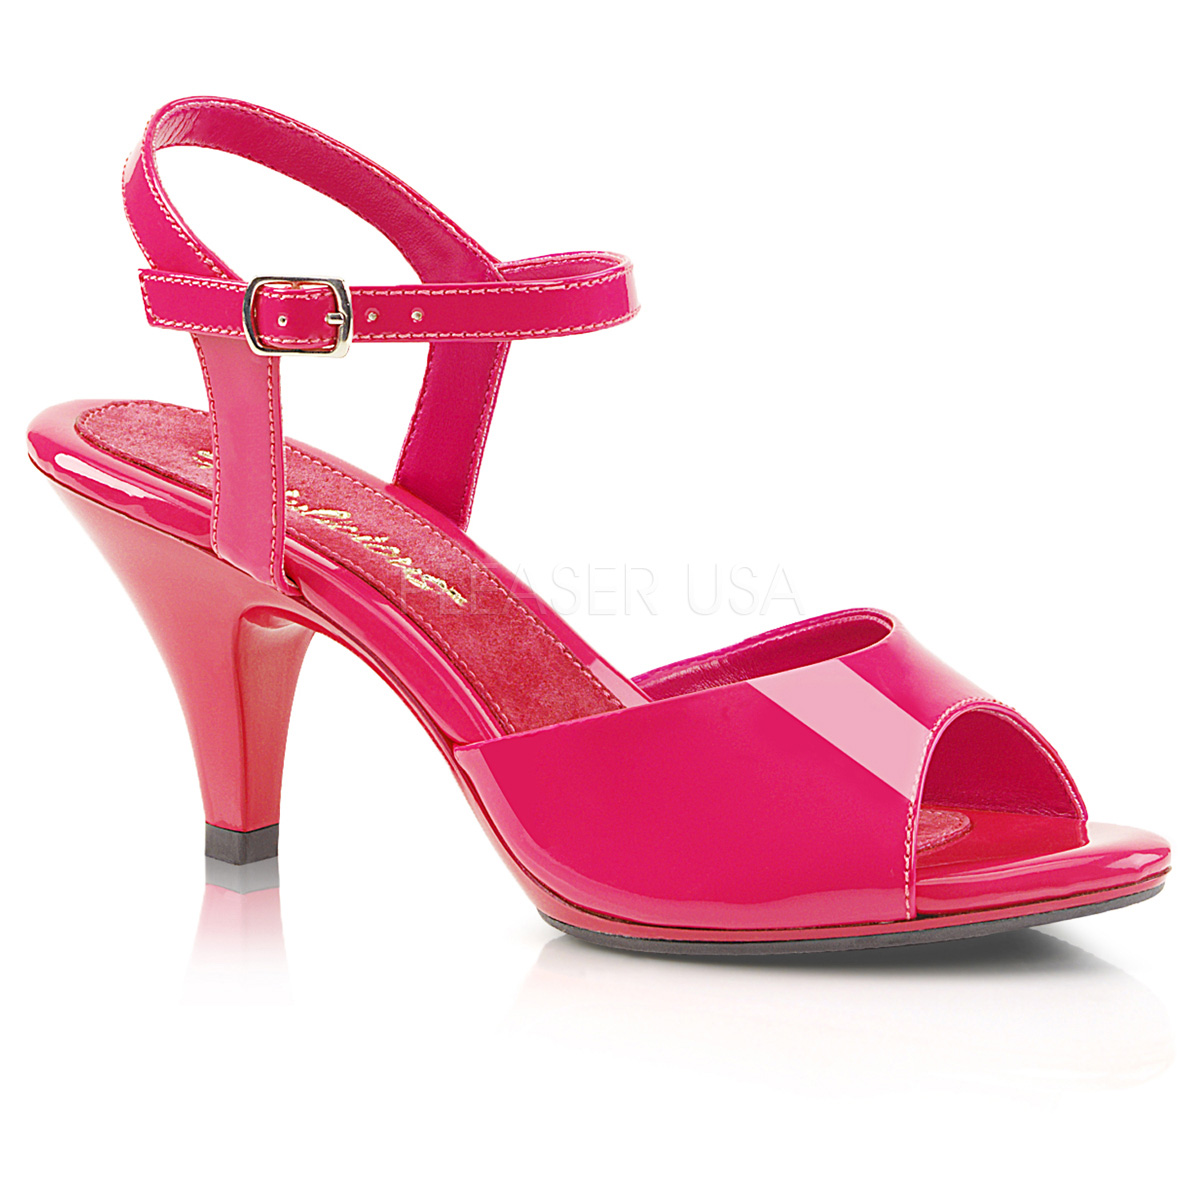 dc28840feede BELLE-309 (HOT PINK) - All4Me